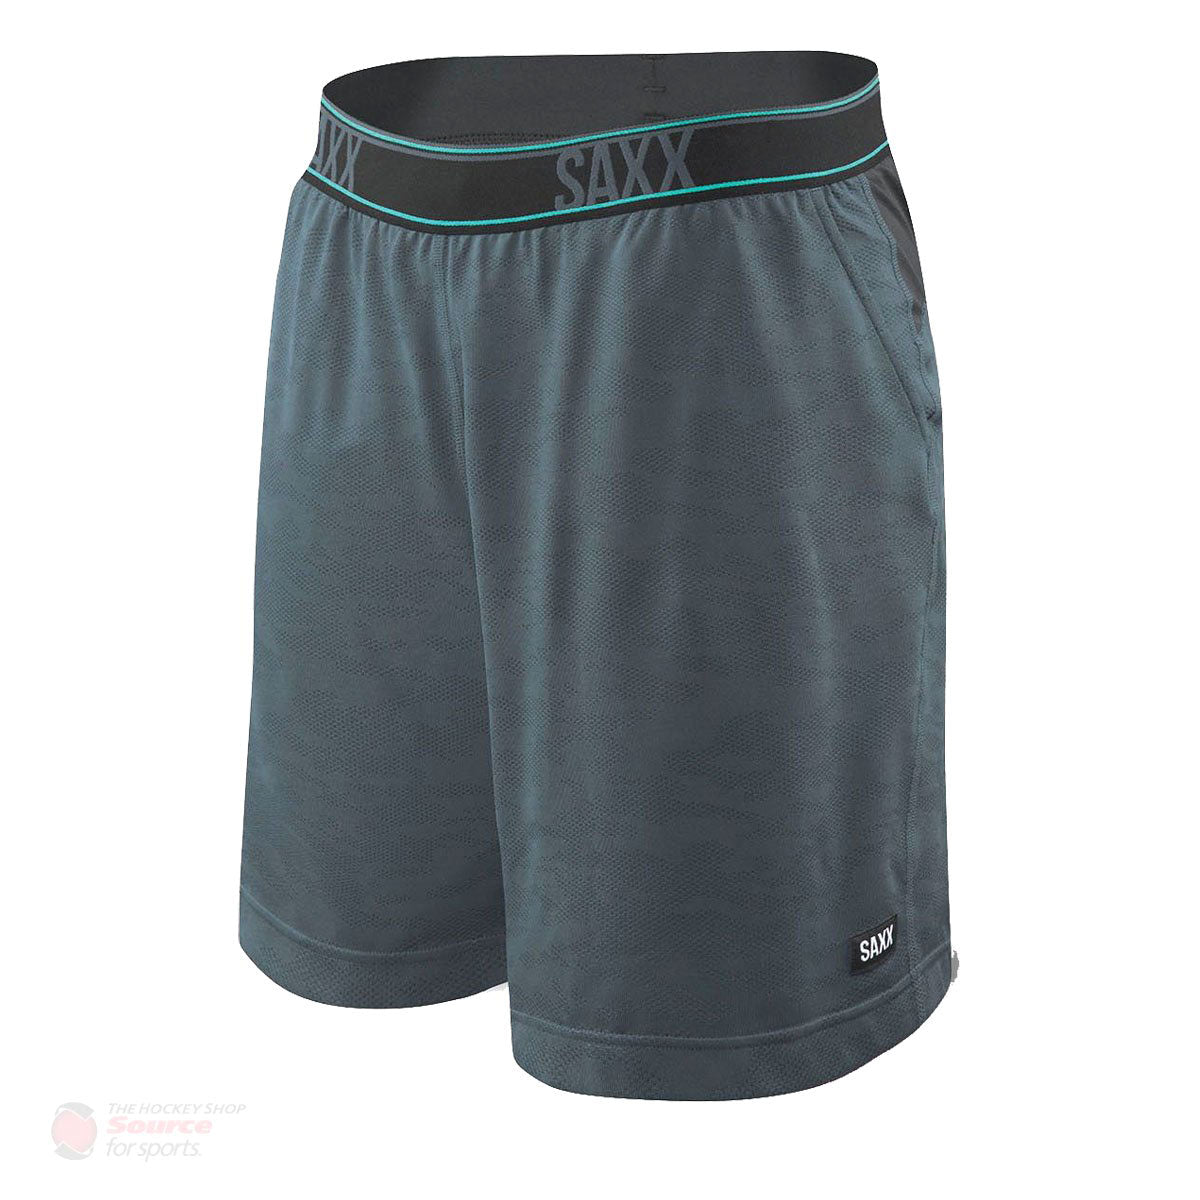 Saxx Legend 2N1 Shorts